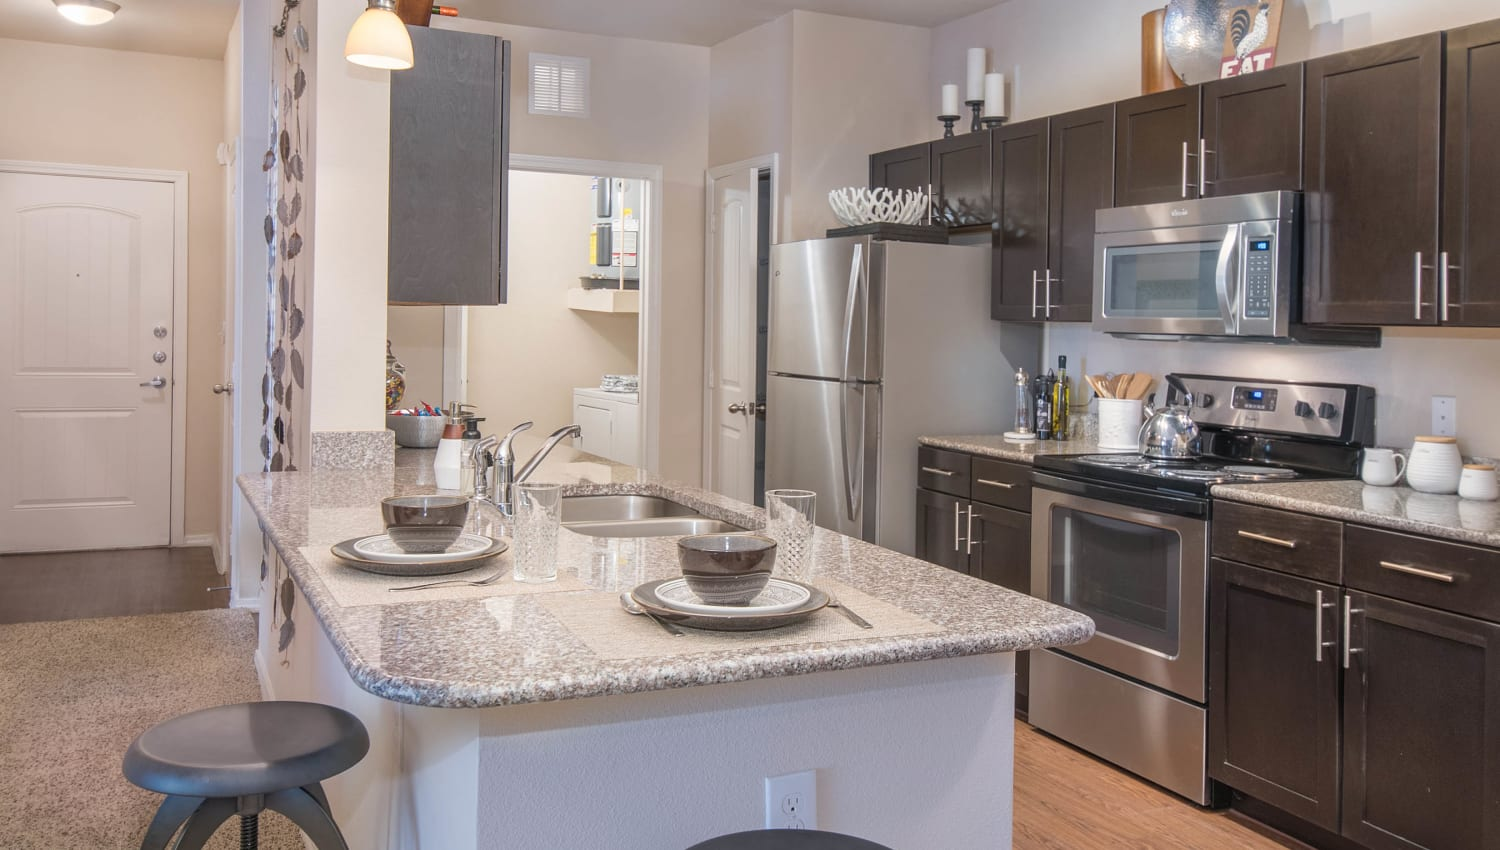 Gourmet kitchen in the open-concept floor plan of a model apartment home at Carrington Oaks in Buda, Texas